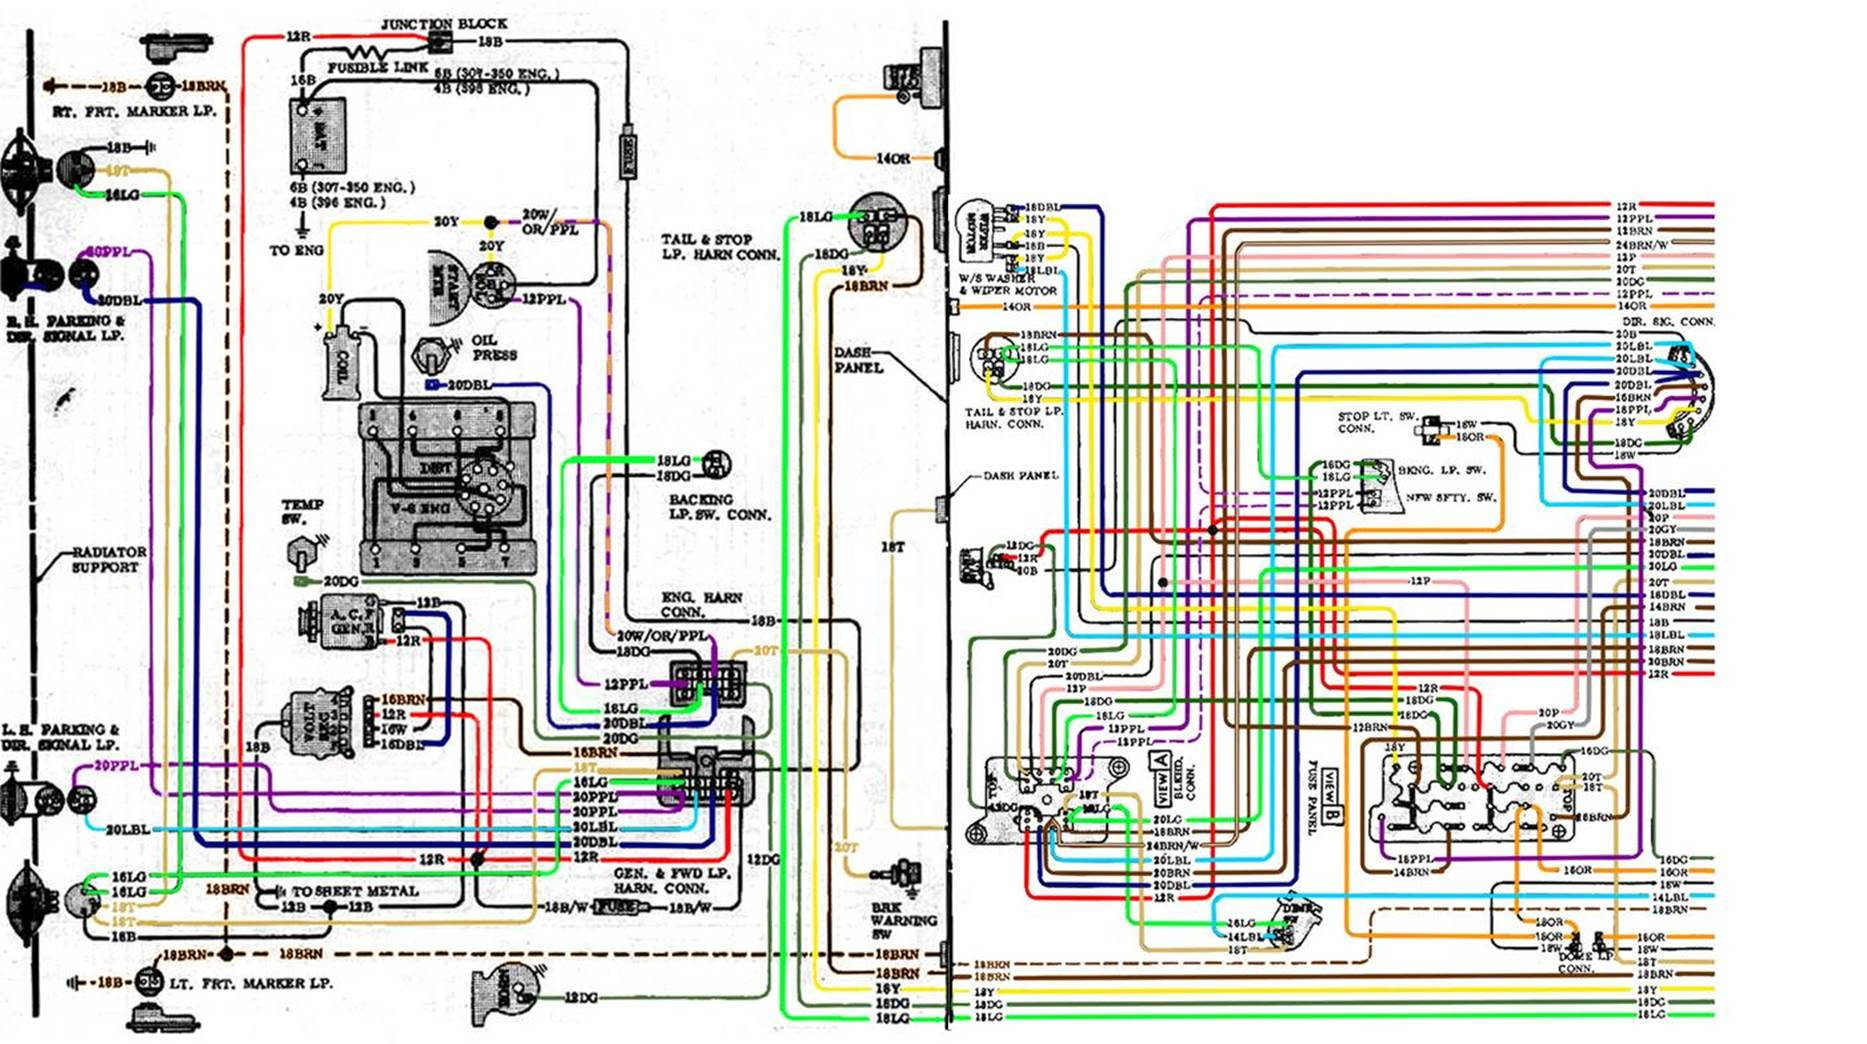 image002 67 72 chevy wiring diagram 1967 chevelle ignition wiring diagram at soozxer.org